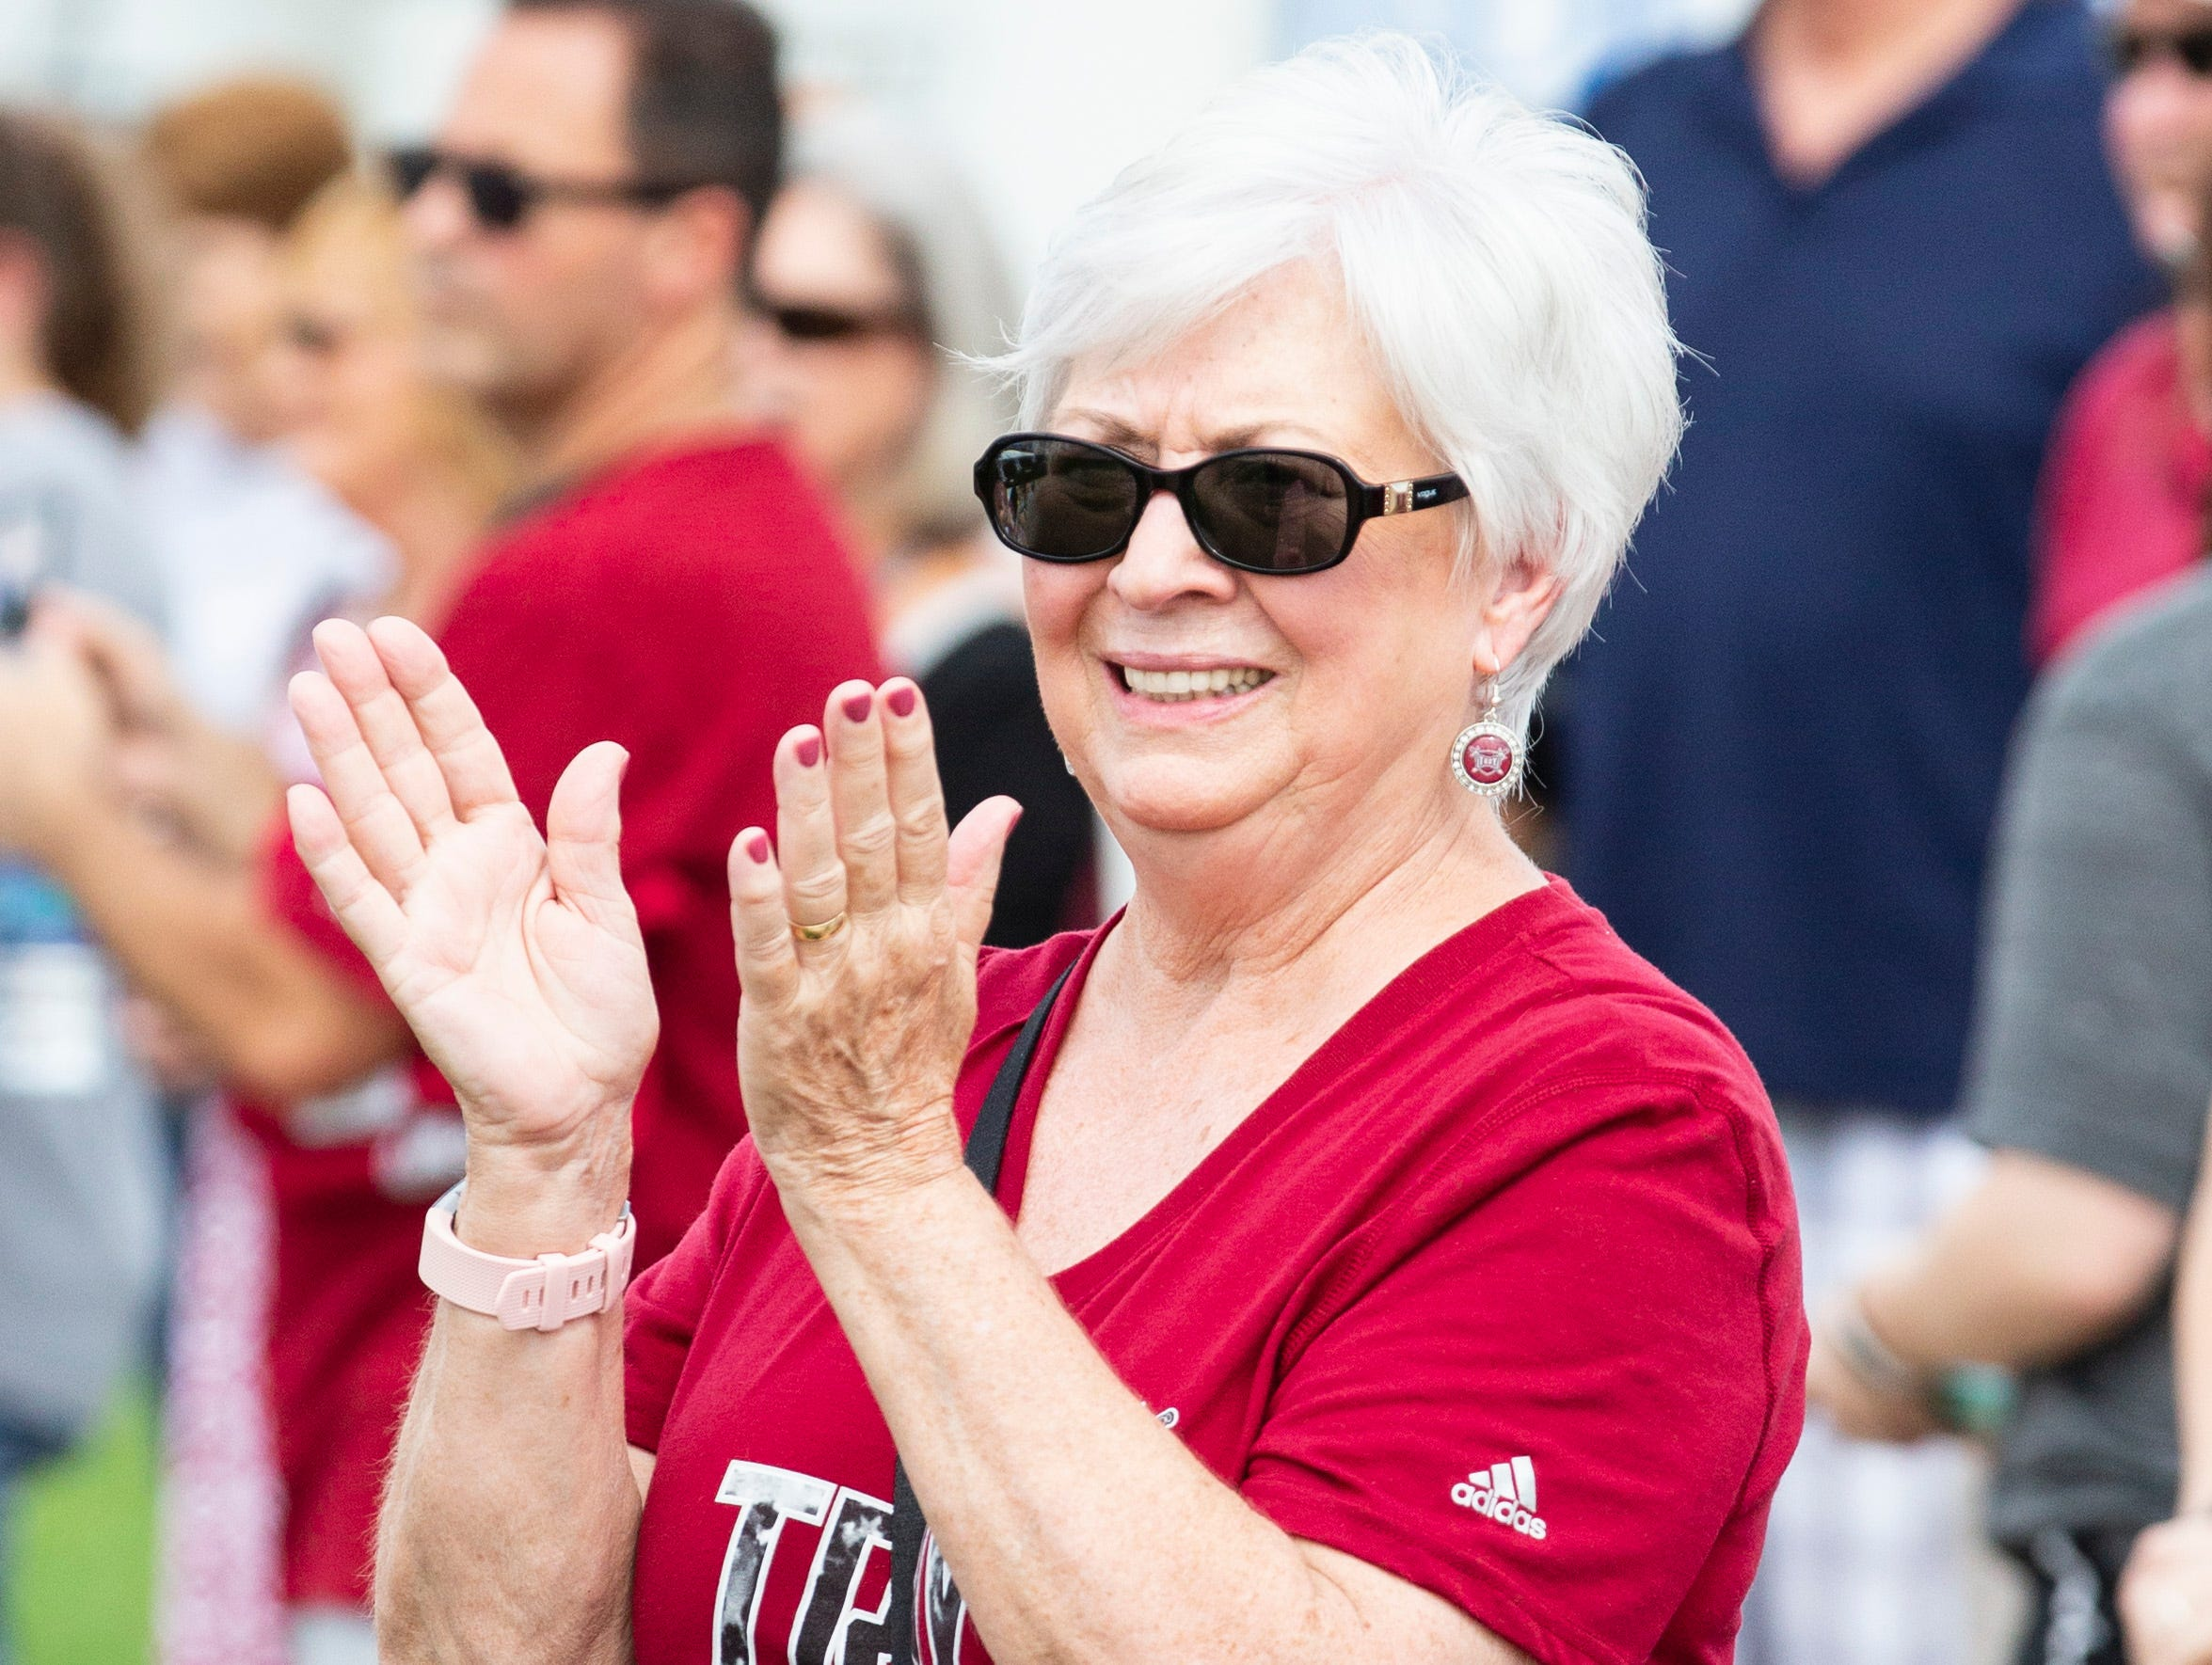 A Troy fan claps along to the band during a pep rally.